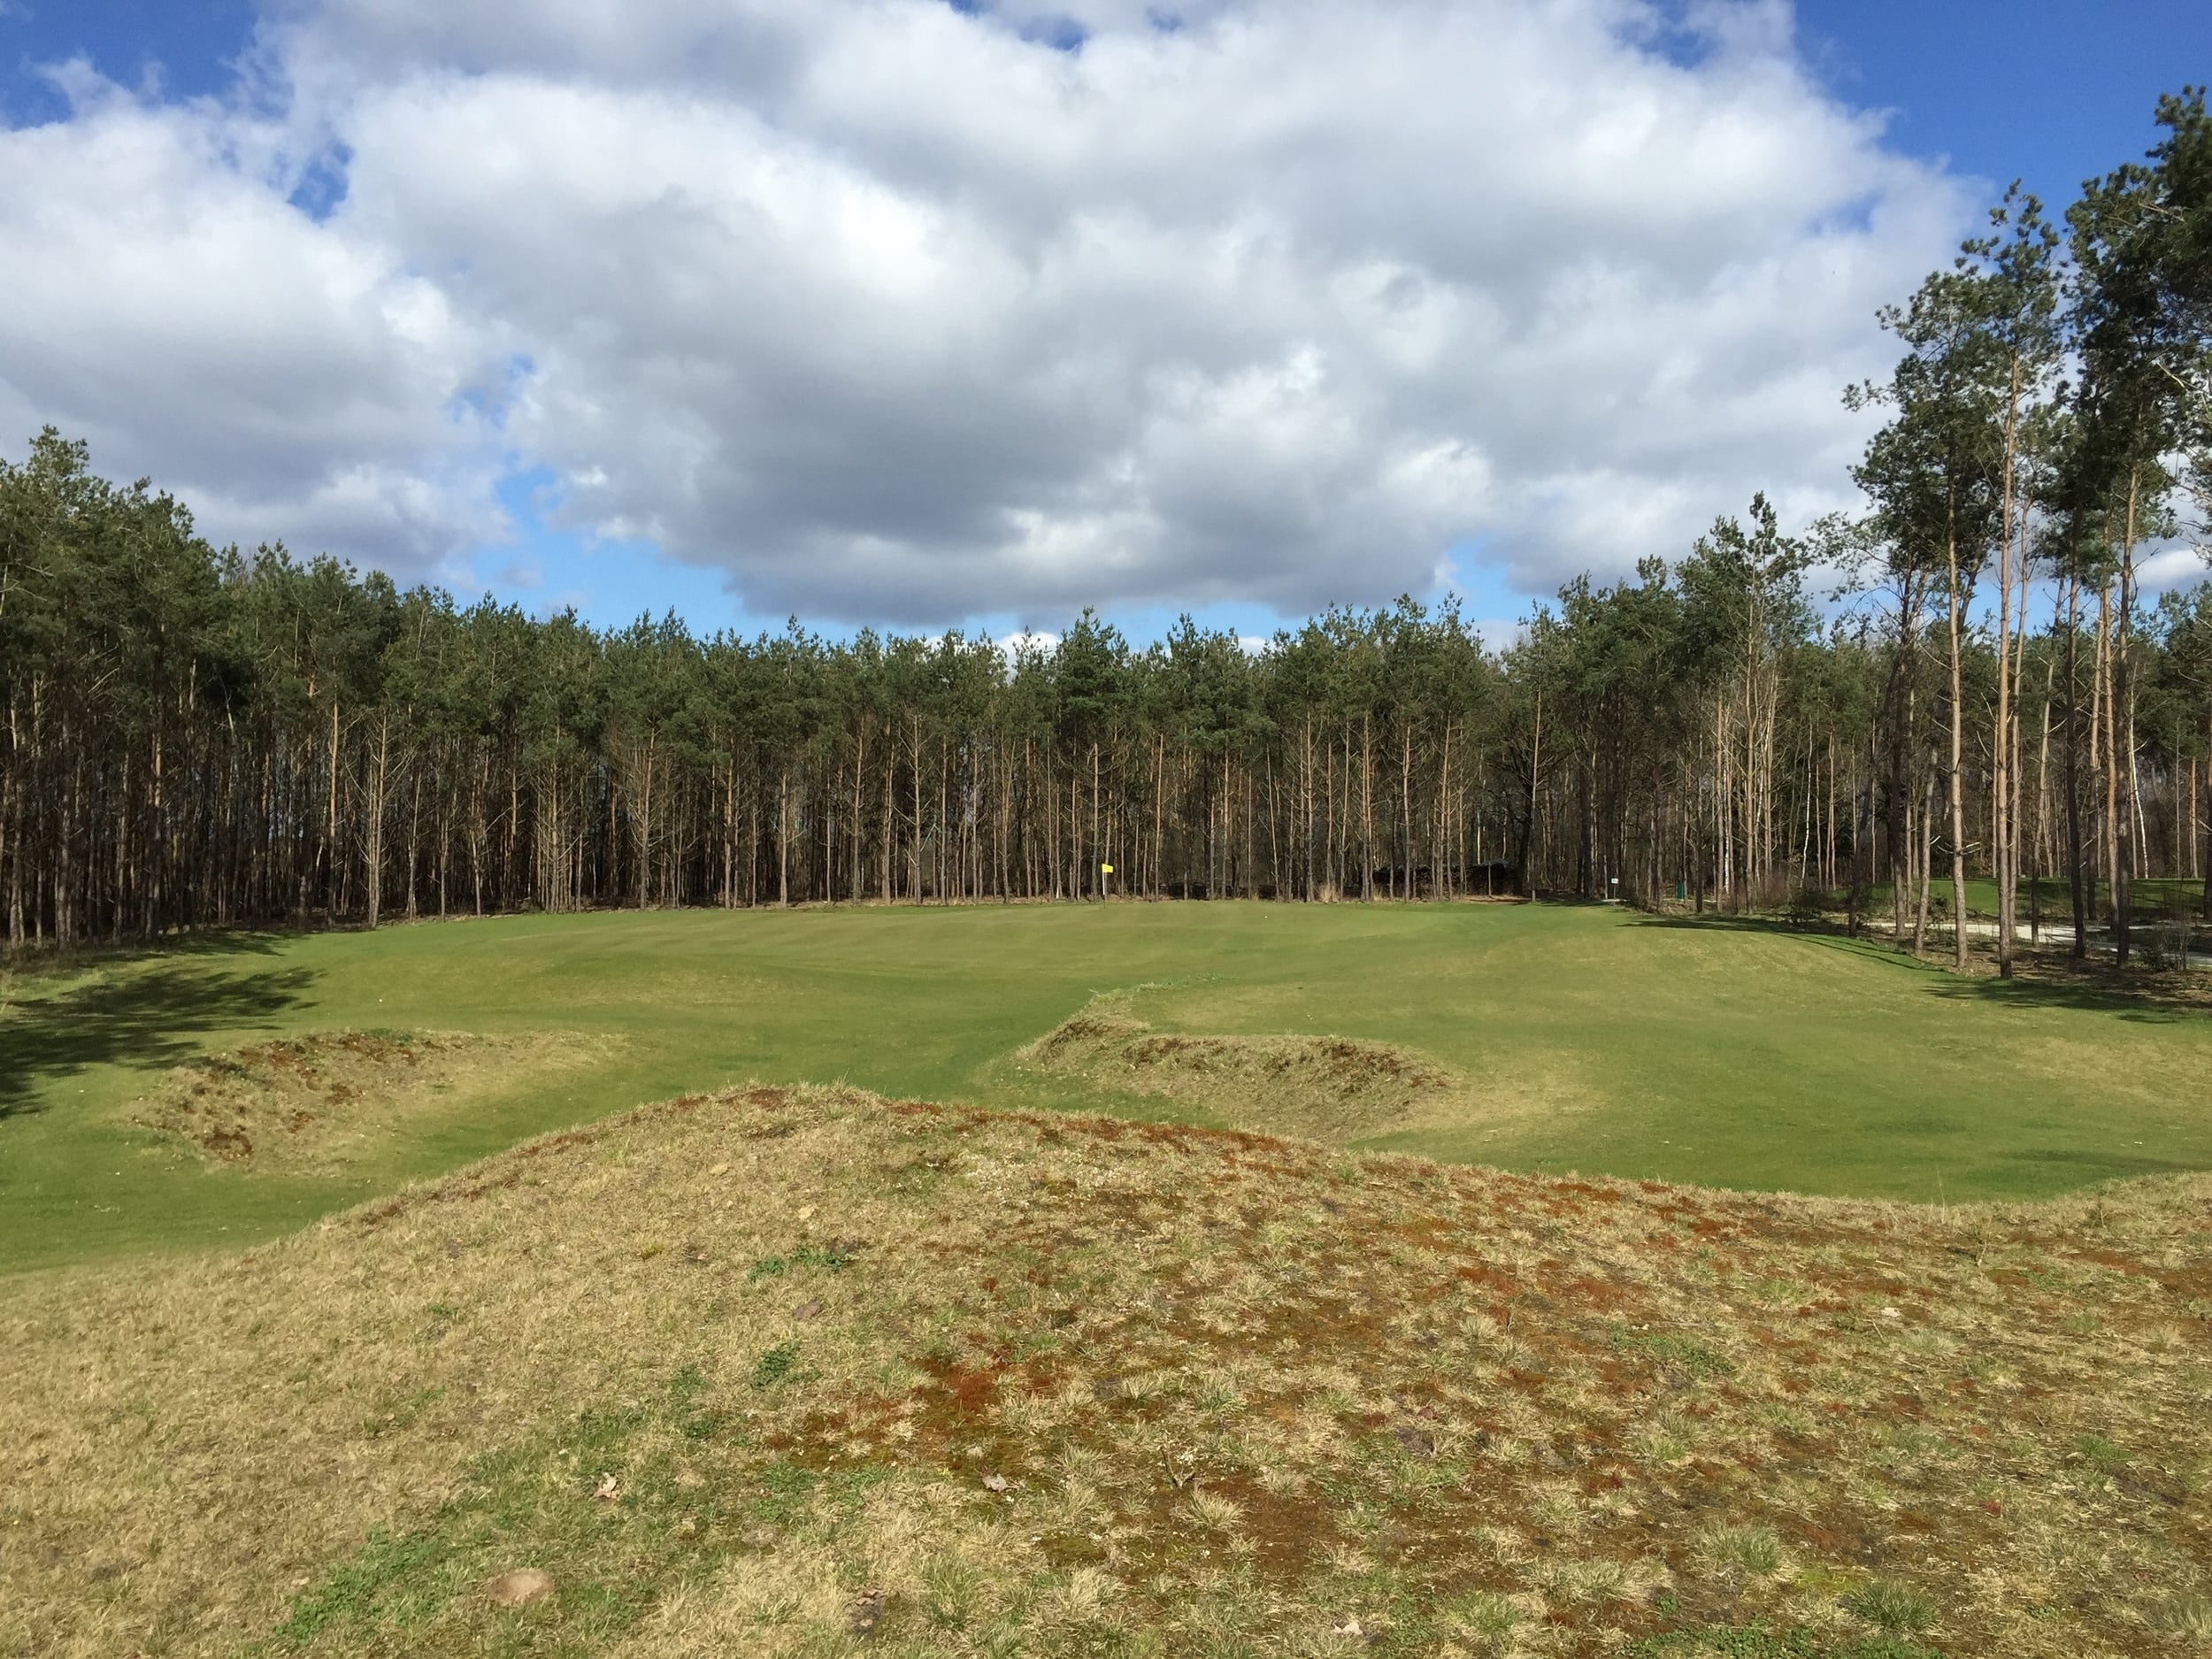 The maintenance meld at Swinkelsche is perfection: fast and natural